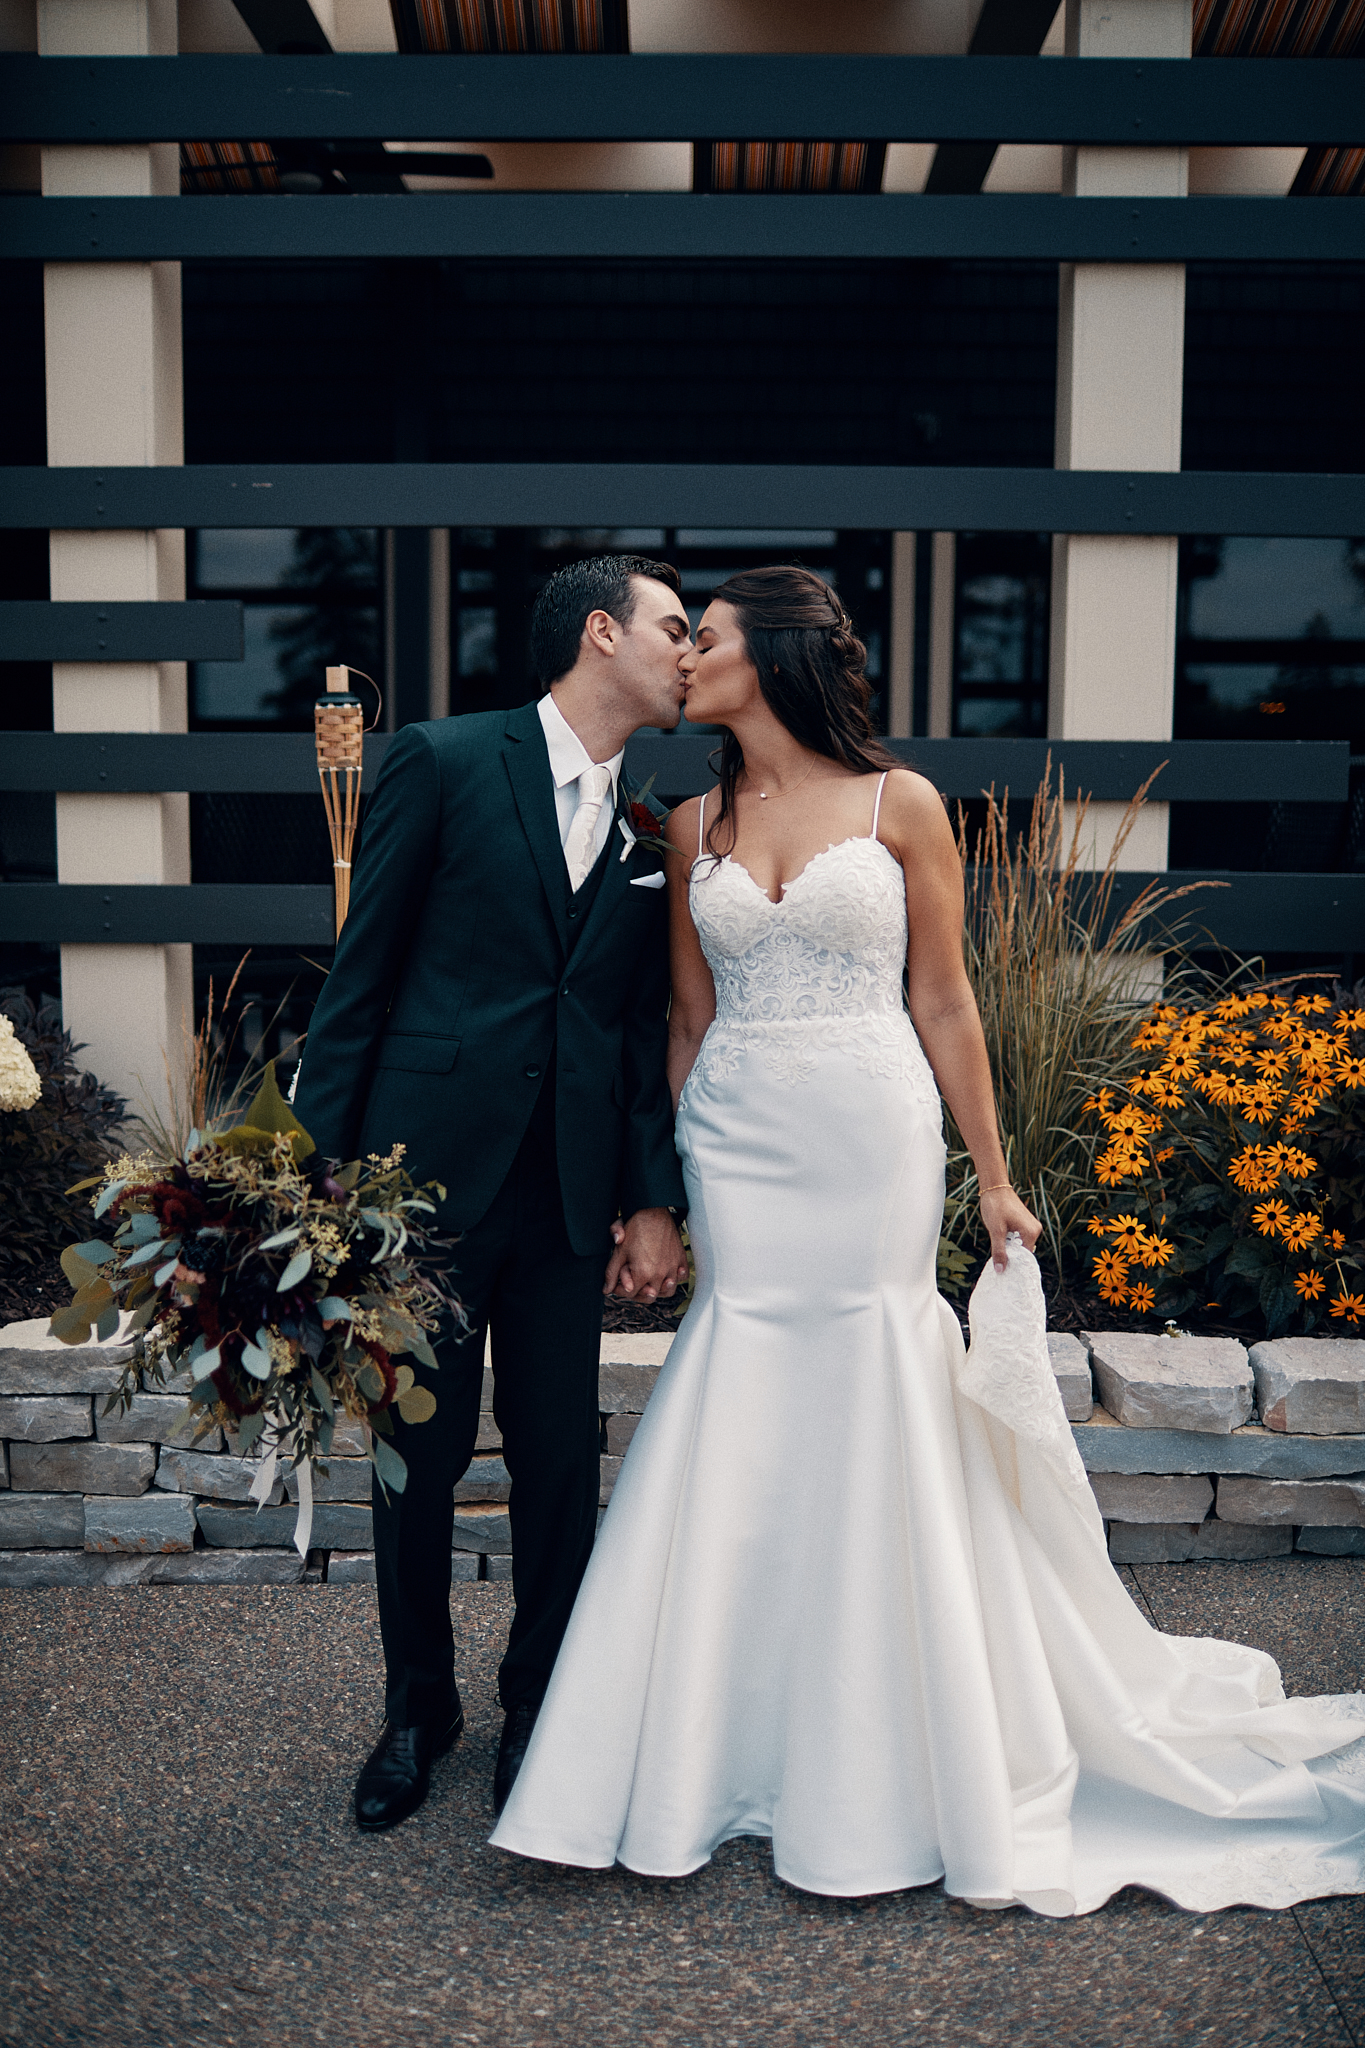 Delwood_Country_Club_In_White_Bear_Lake_Wedding_And_Engaement_Photographer_In_Minnesota_High_End_Brand_Something_Candid_009.JPG